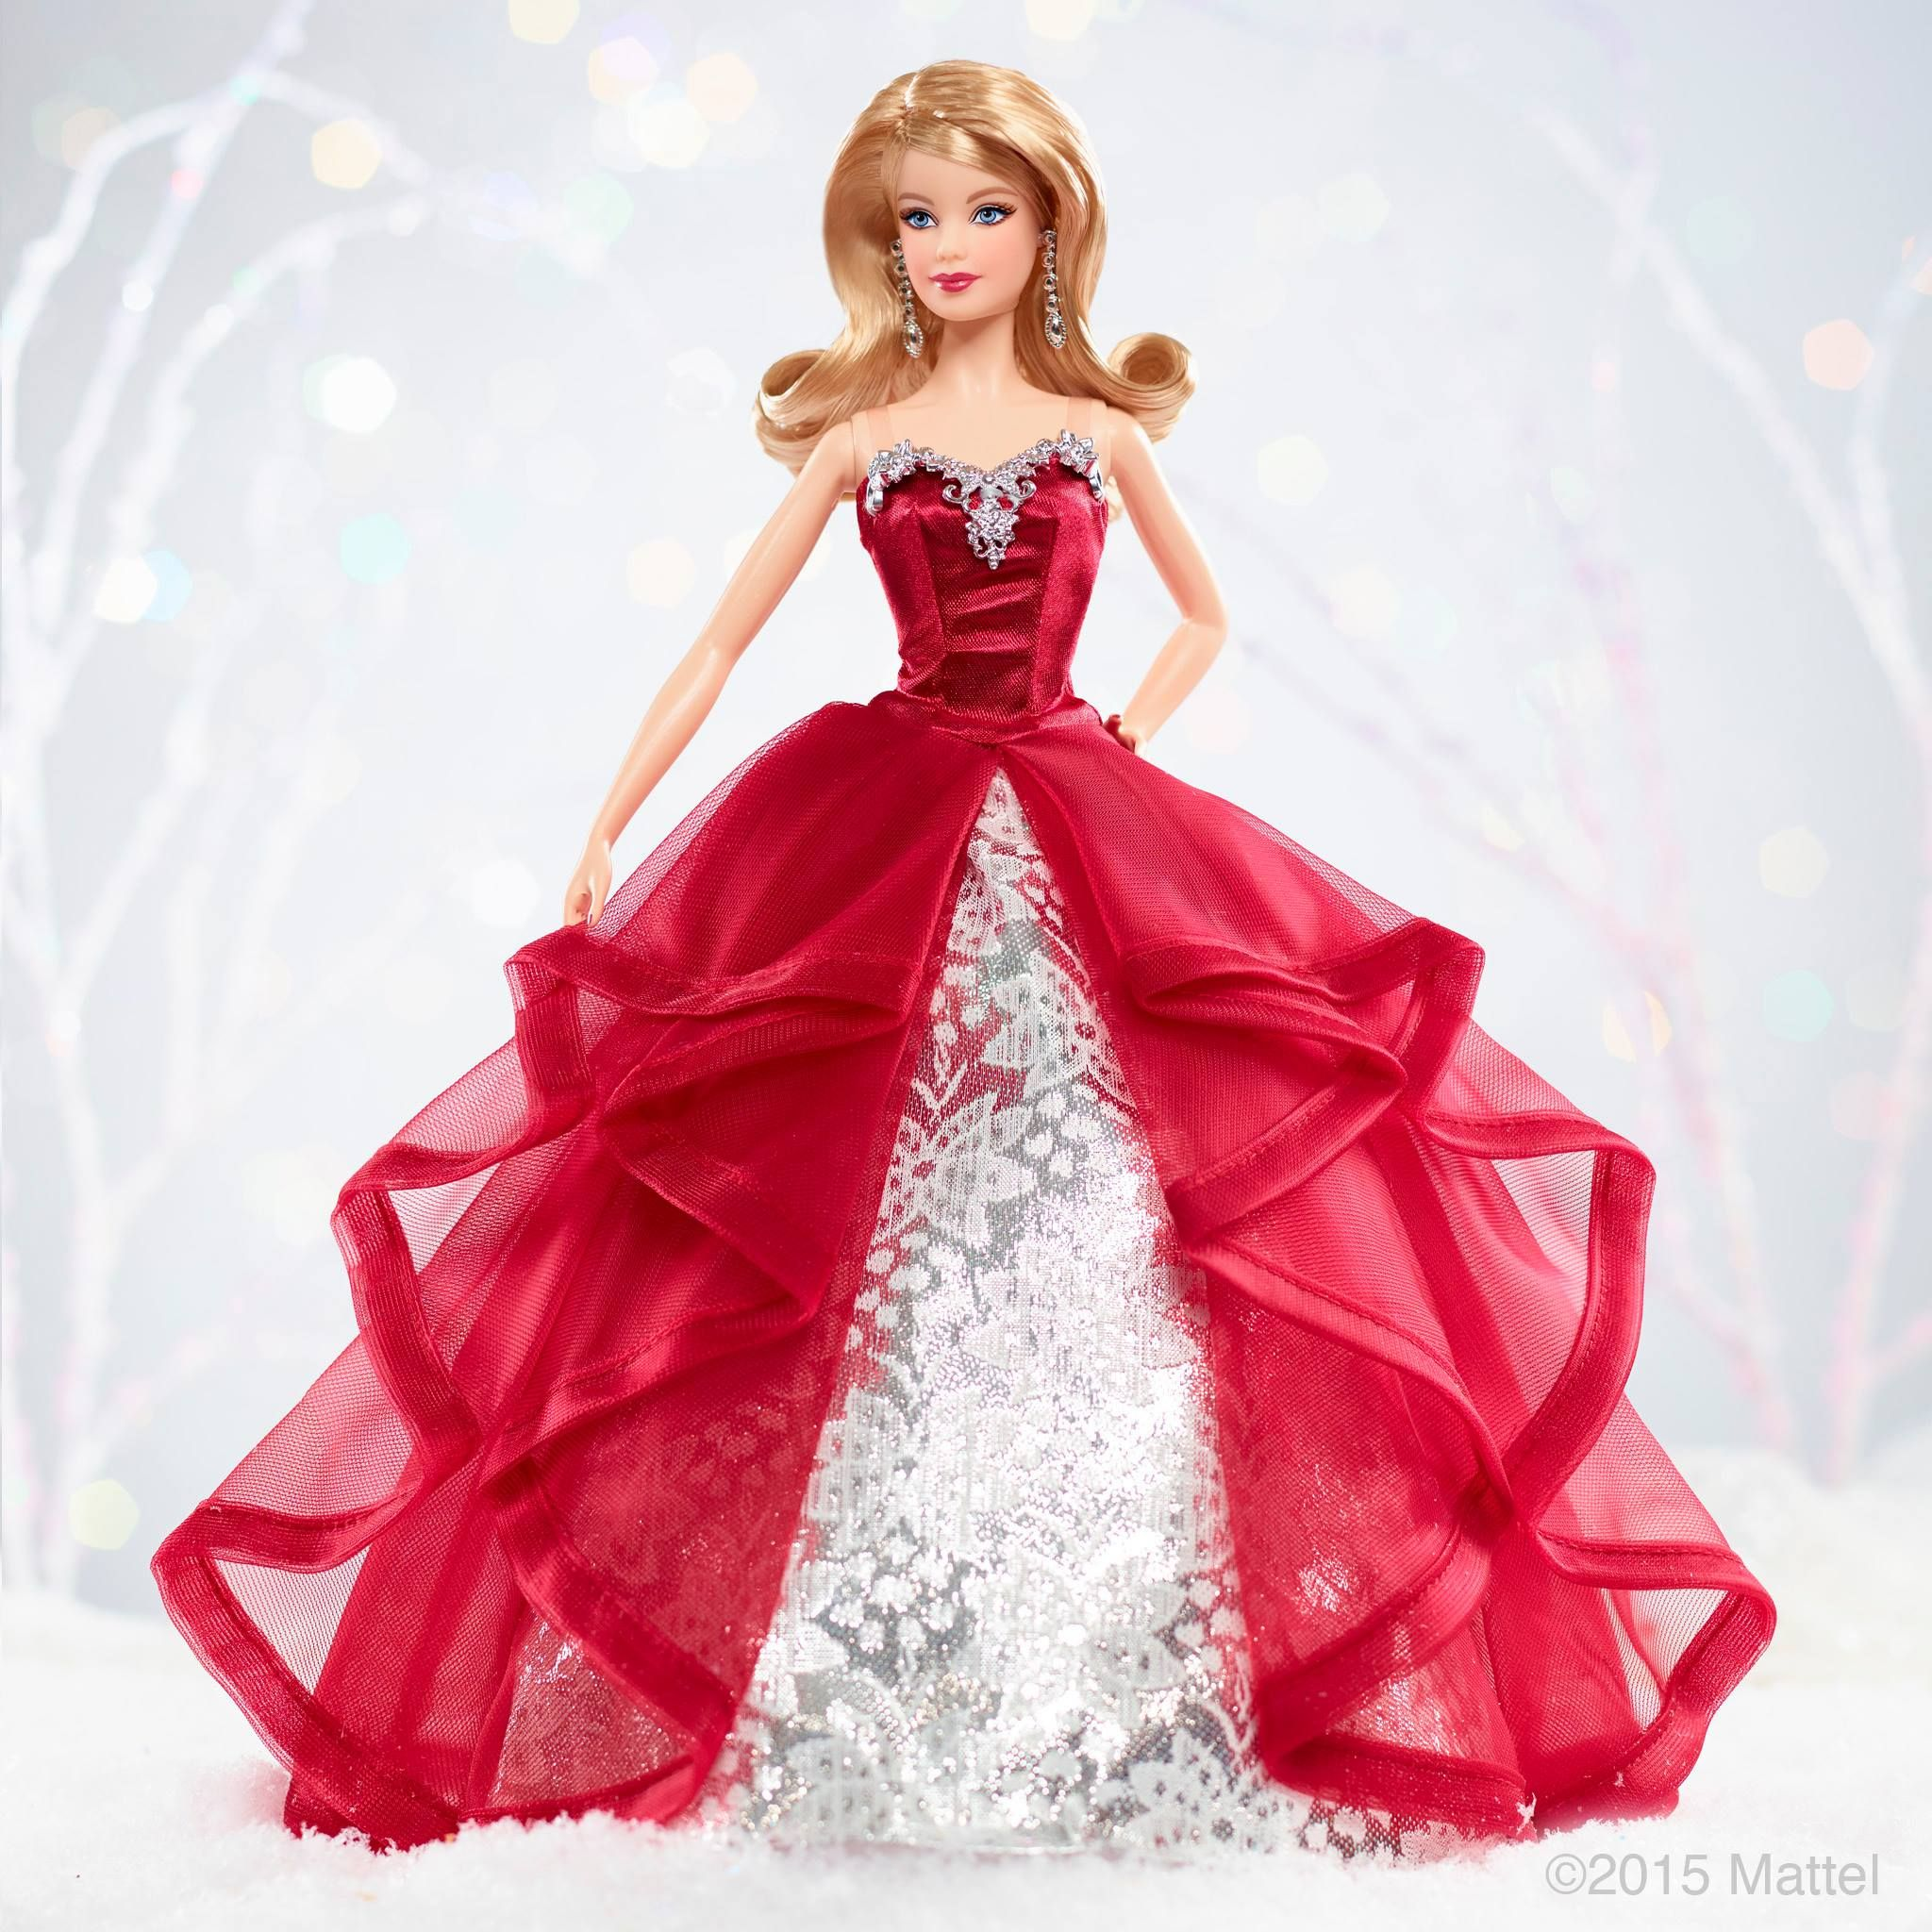 2015 Holiday Barbie | Barbie Doll | Pinterest | Holidays, Dolls and ...